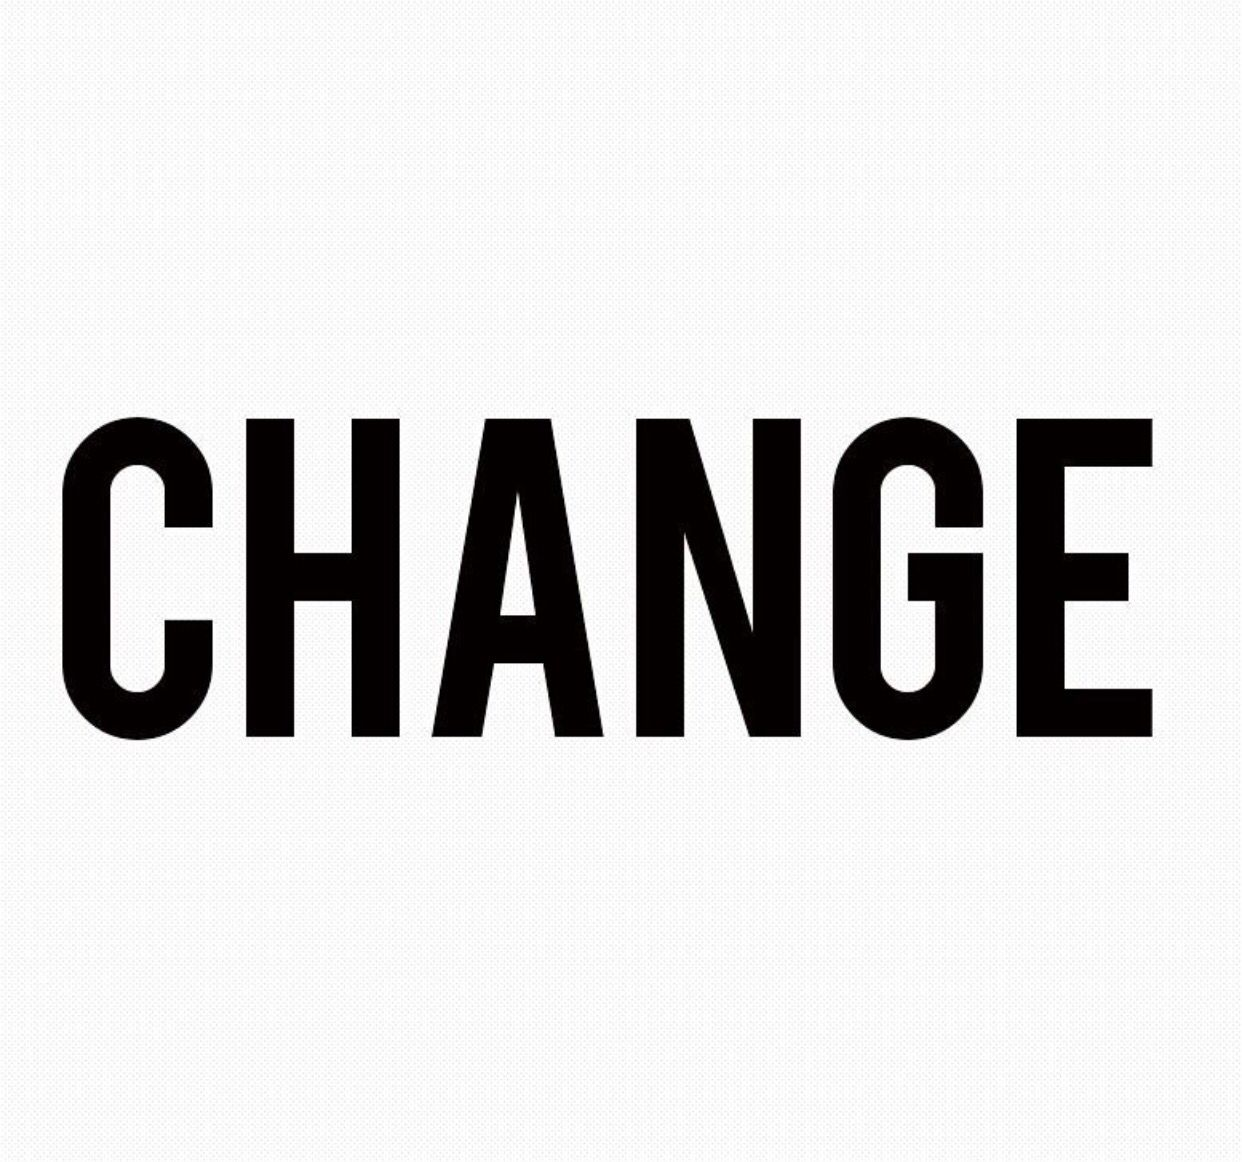 One of the toughest things for entrepreneurs to do is to consistently change on a daily basis.   Without change, there is no true progress.   Without progress, there is no true fulfillment.   Make the changes now.   Reap the benefits later.   #Startups #Entrepreneurs #BizzCliQ